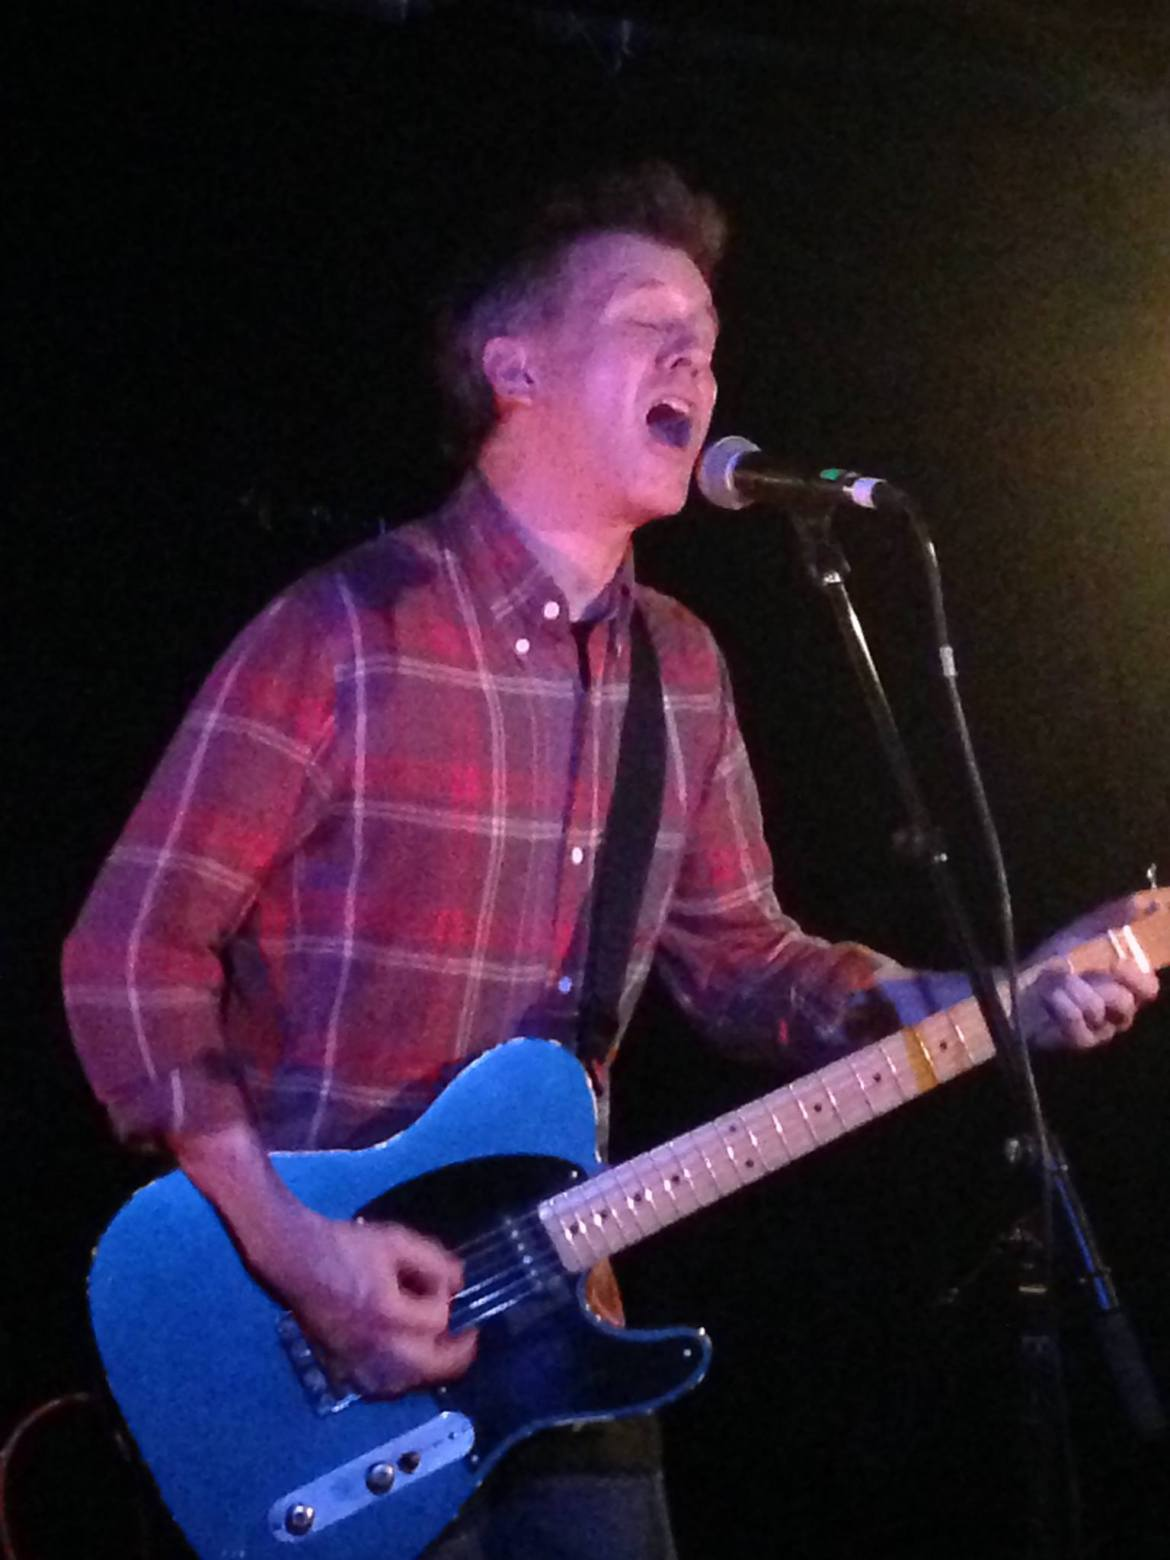 Mac McCaughan – Courtyard Theatre, Hoxton, London, Wednesday 11th November 2015